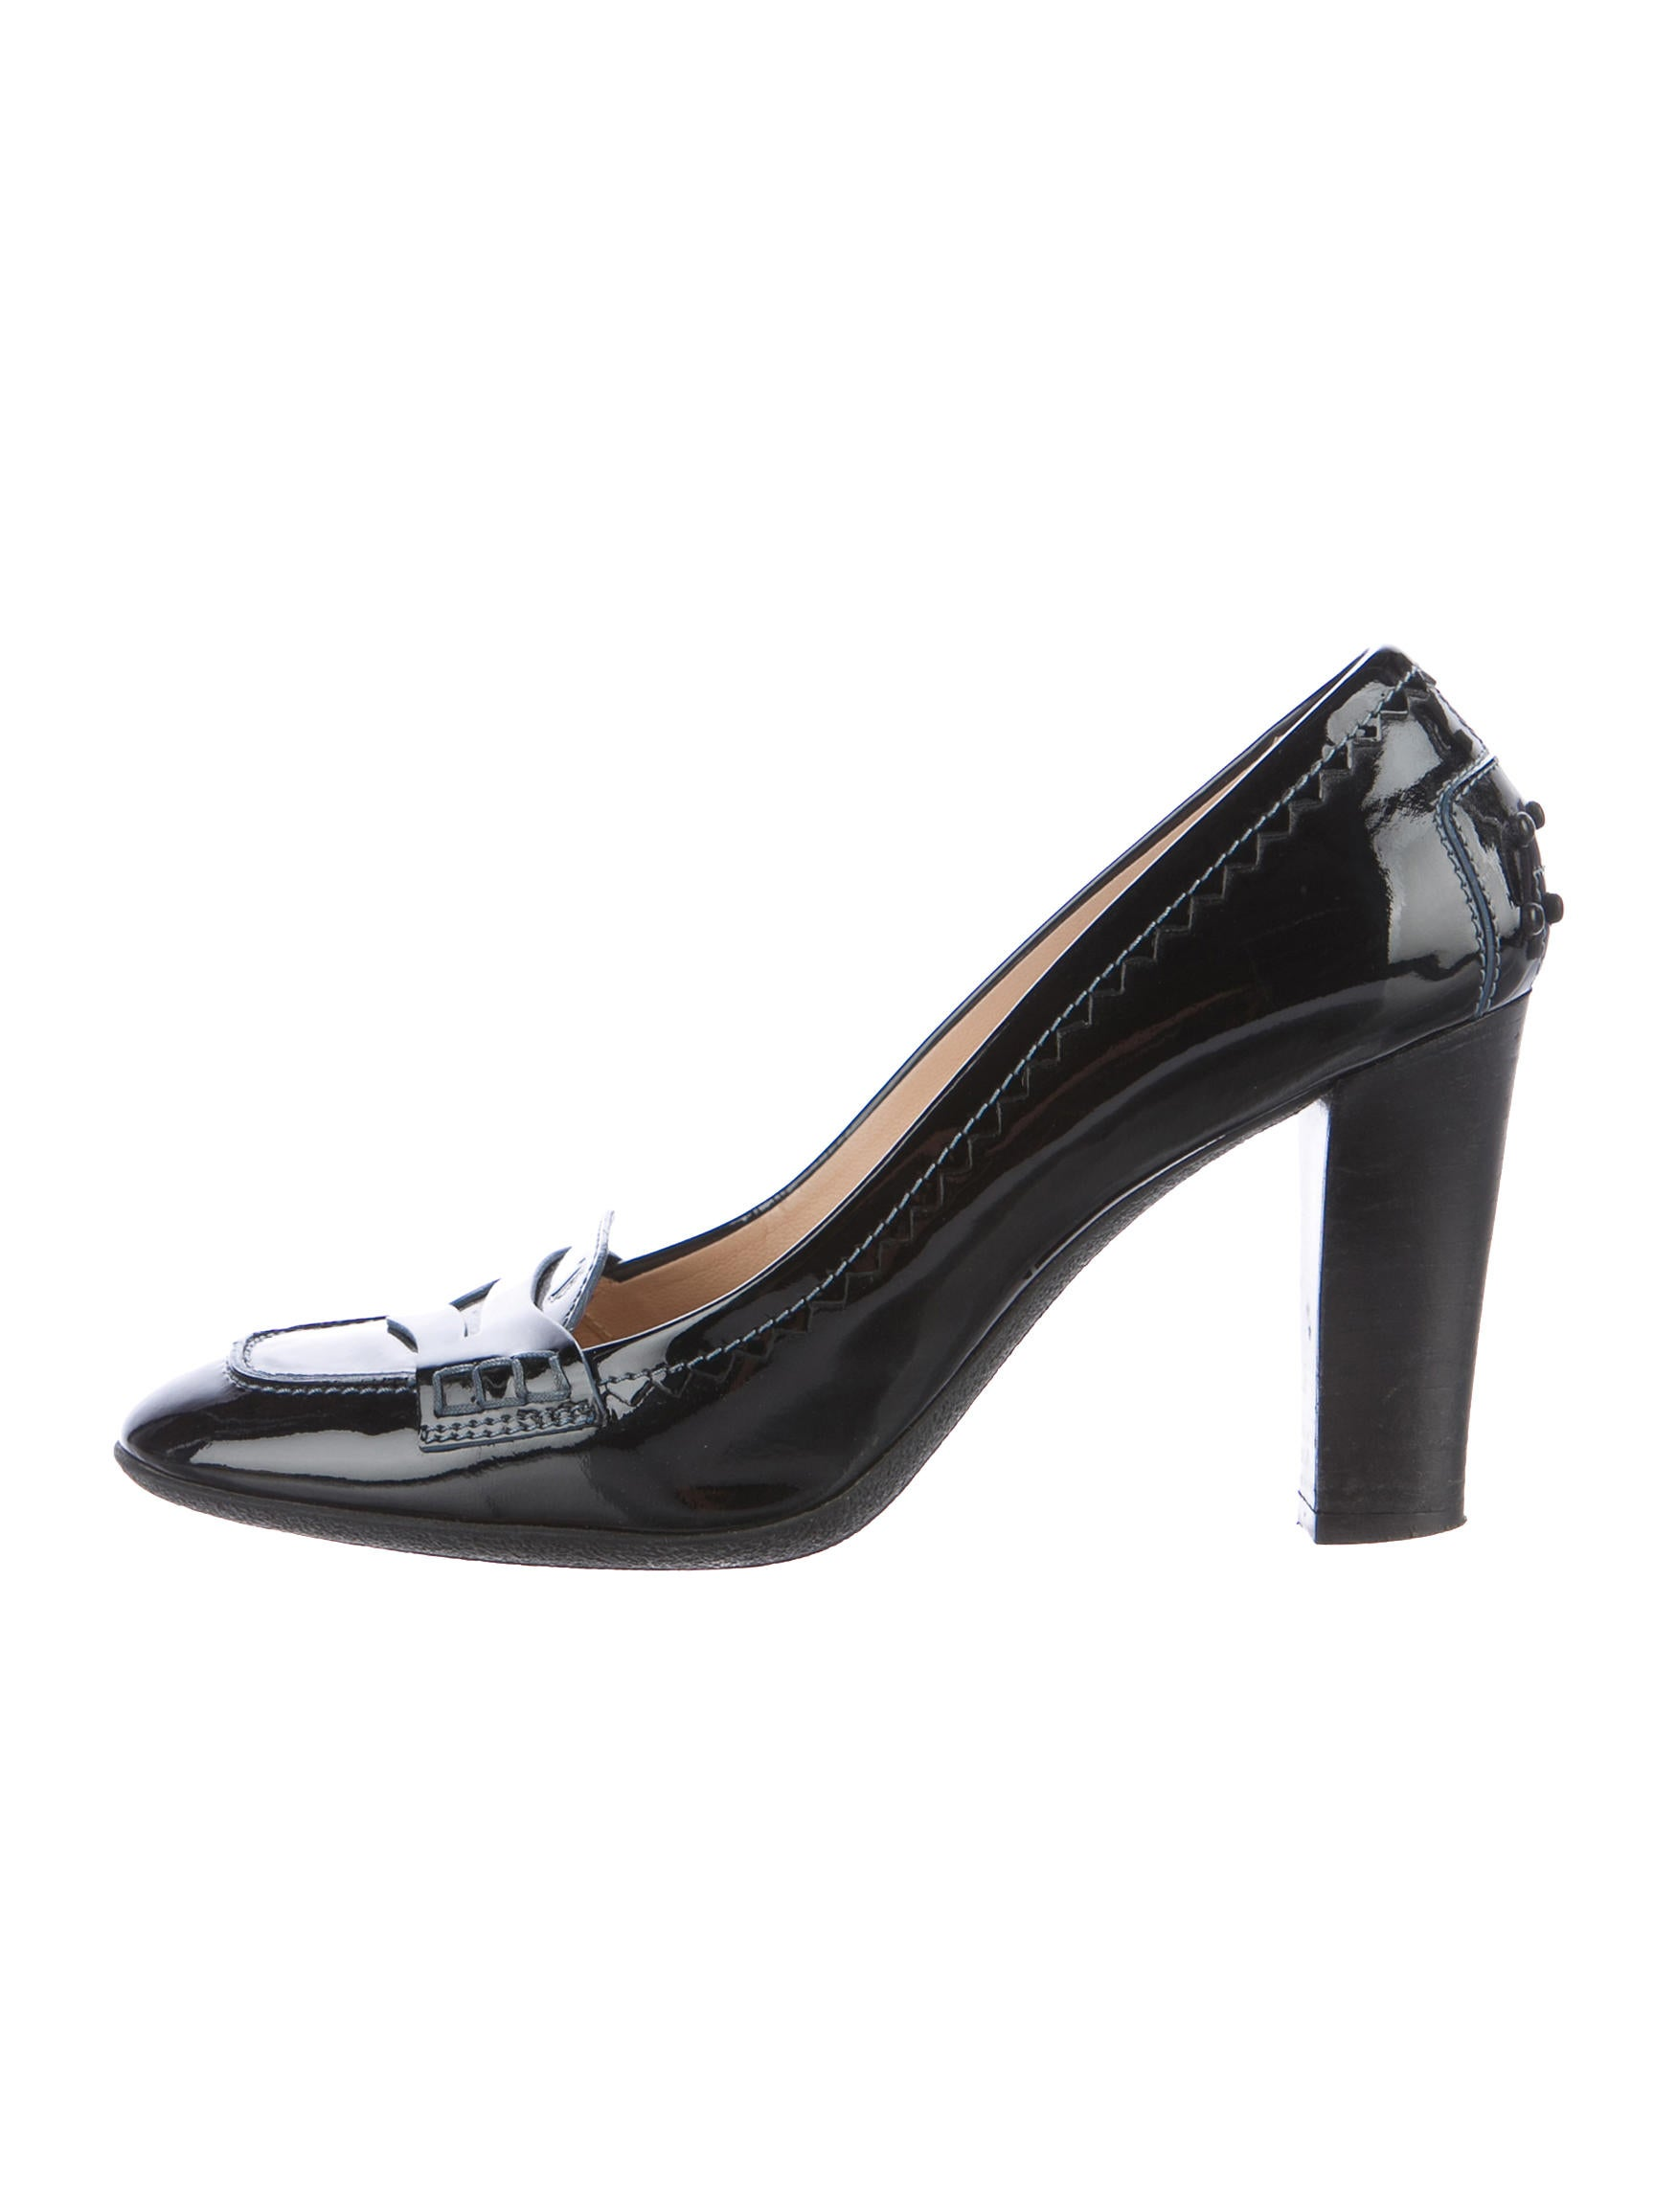 discount visit new Tod's Round-Toe Patent Leather Pumps 2015 new sale online cheap 2014 unisex rfxRhy